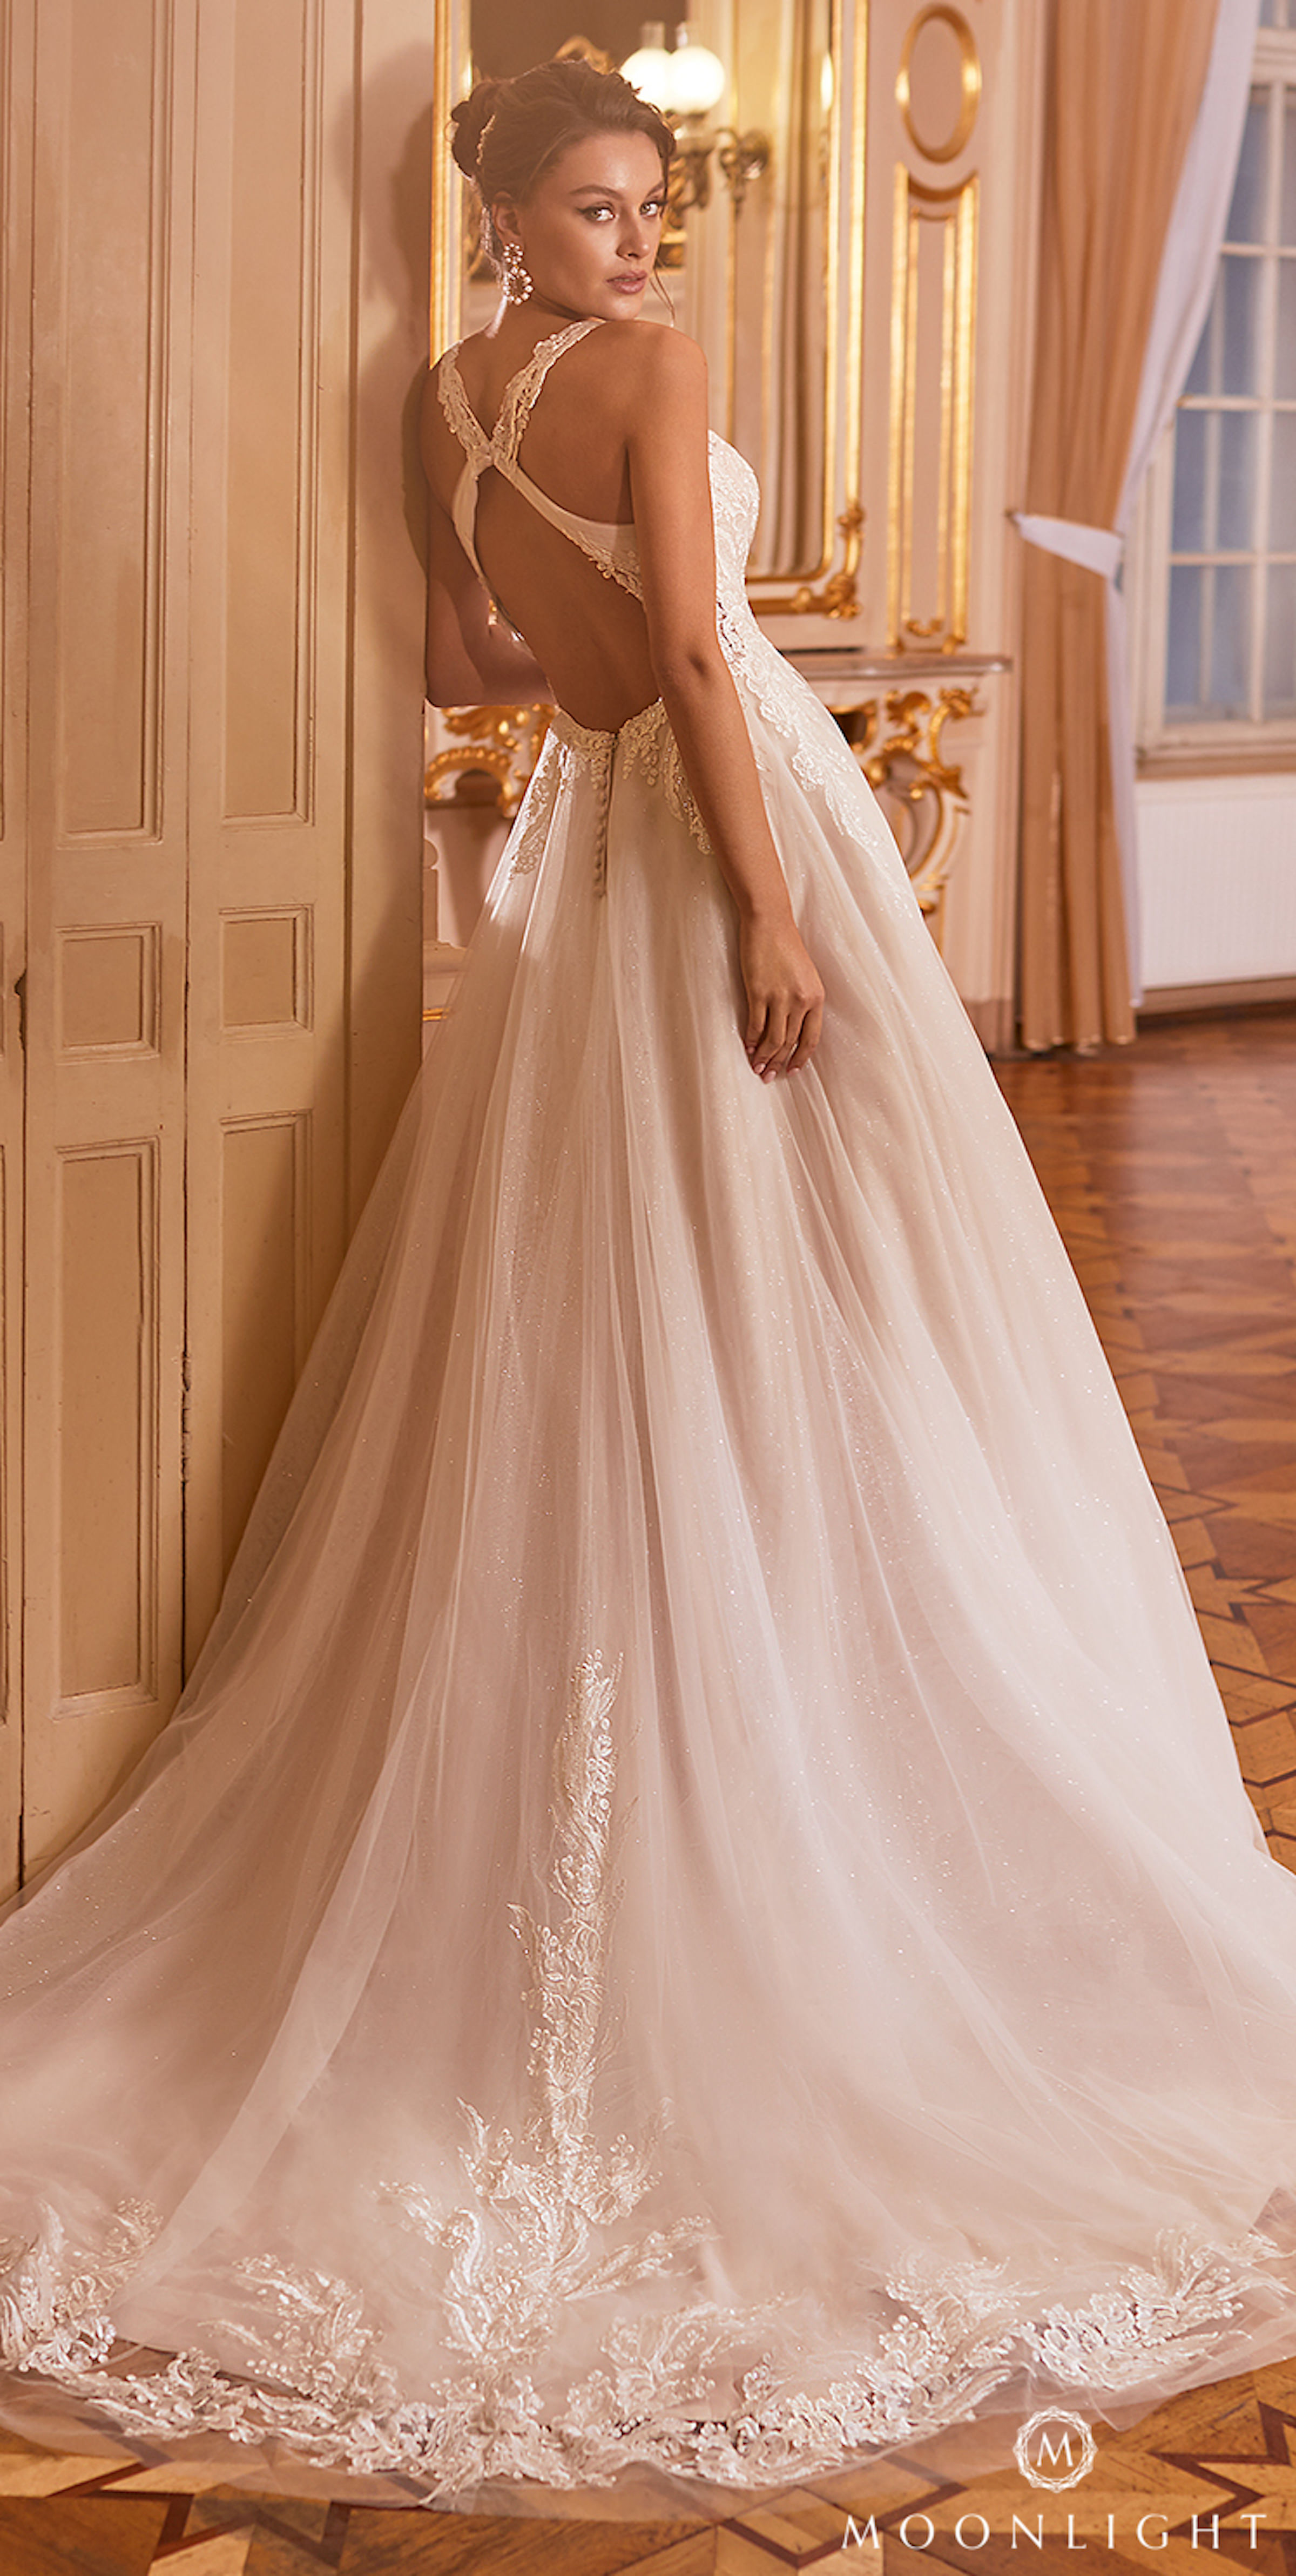 Gilded X Moonlight Collection Fall 2021 Wedding Dresses - J6825